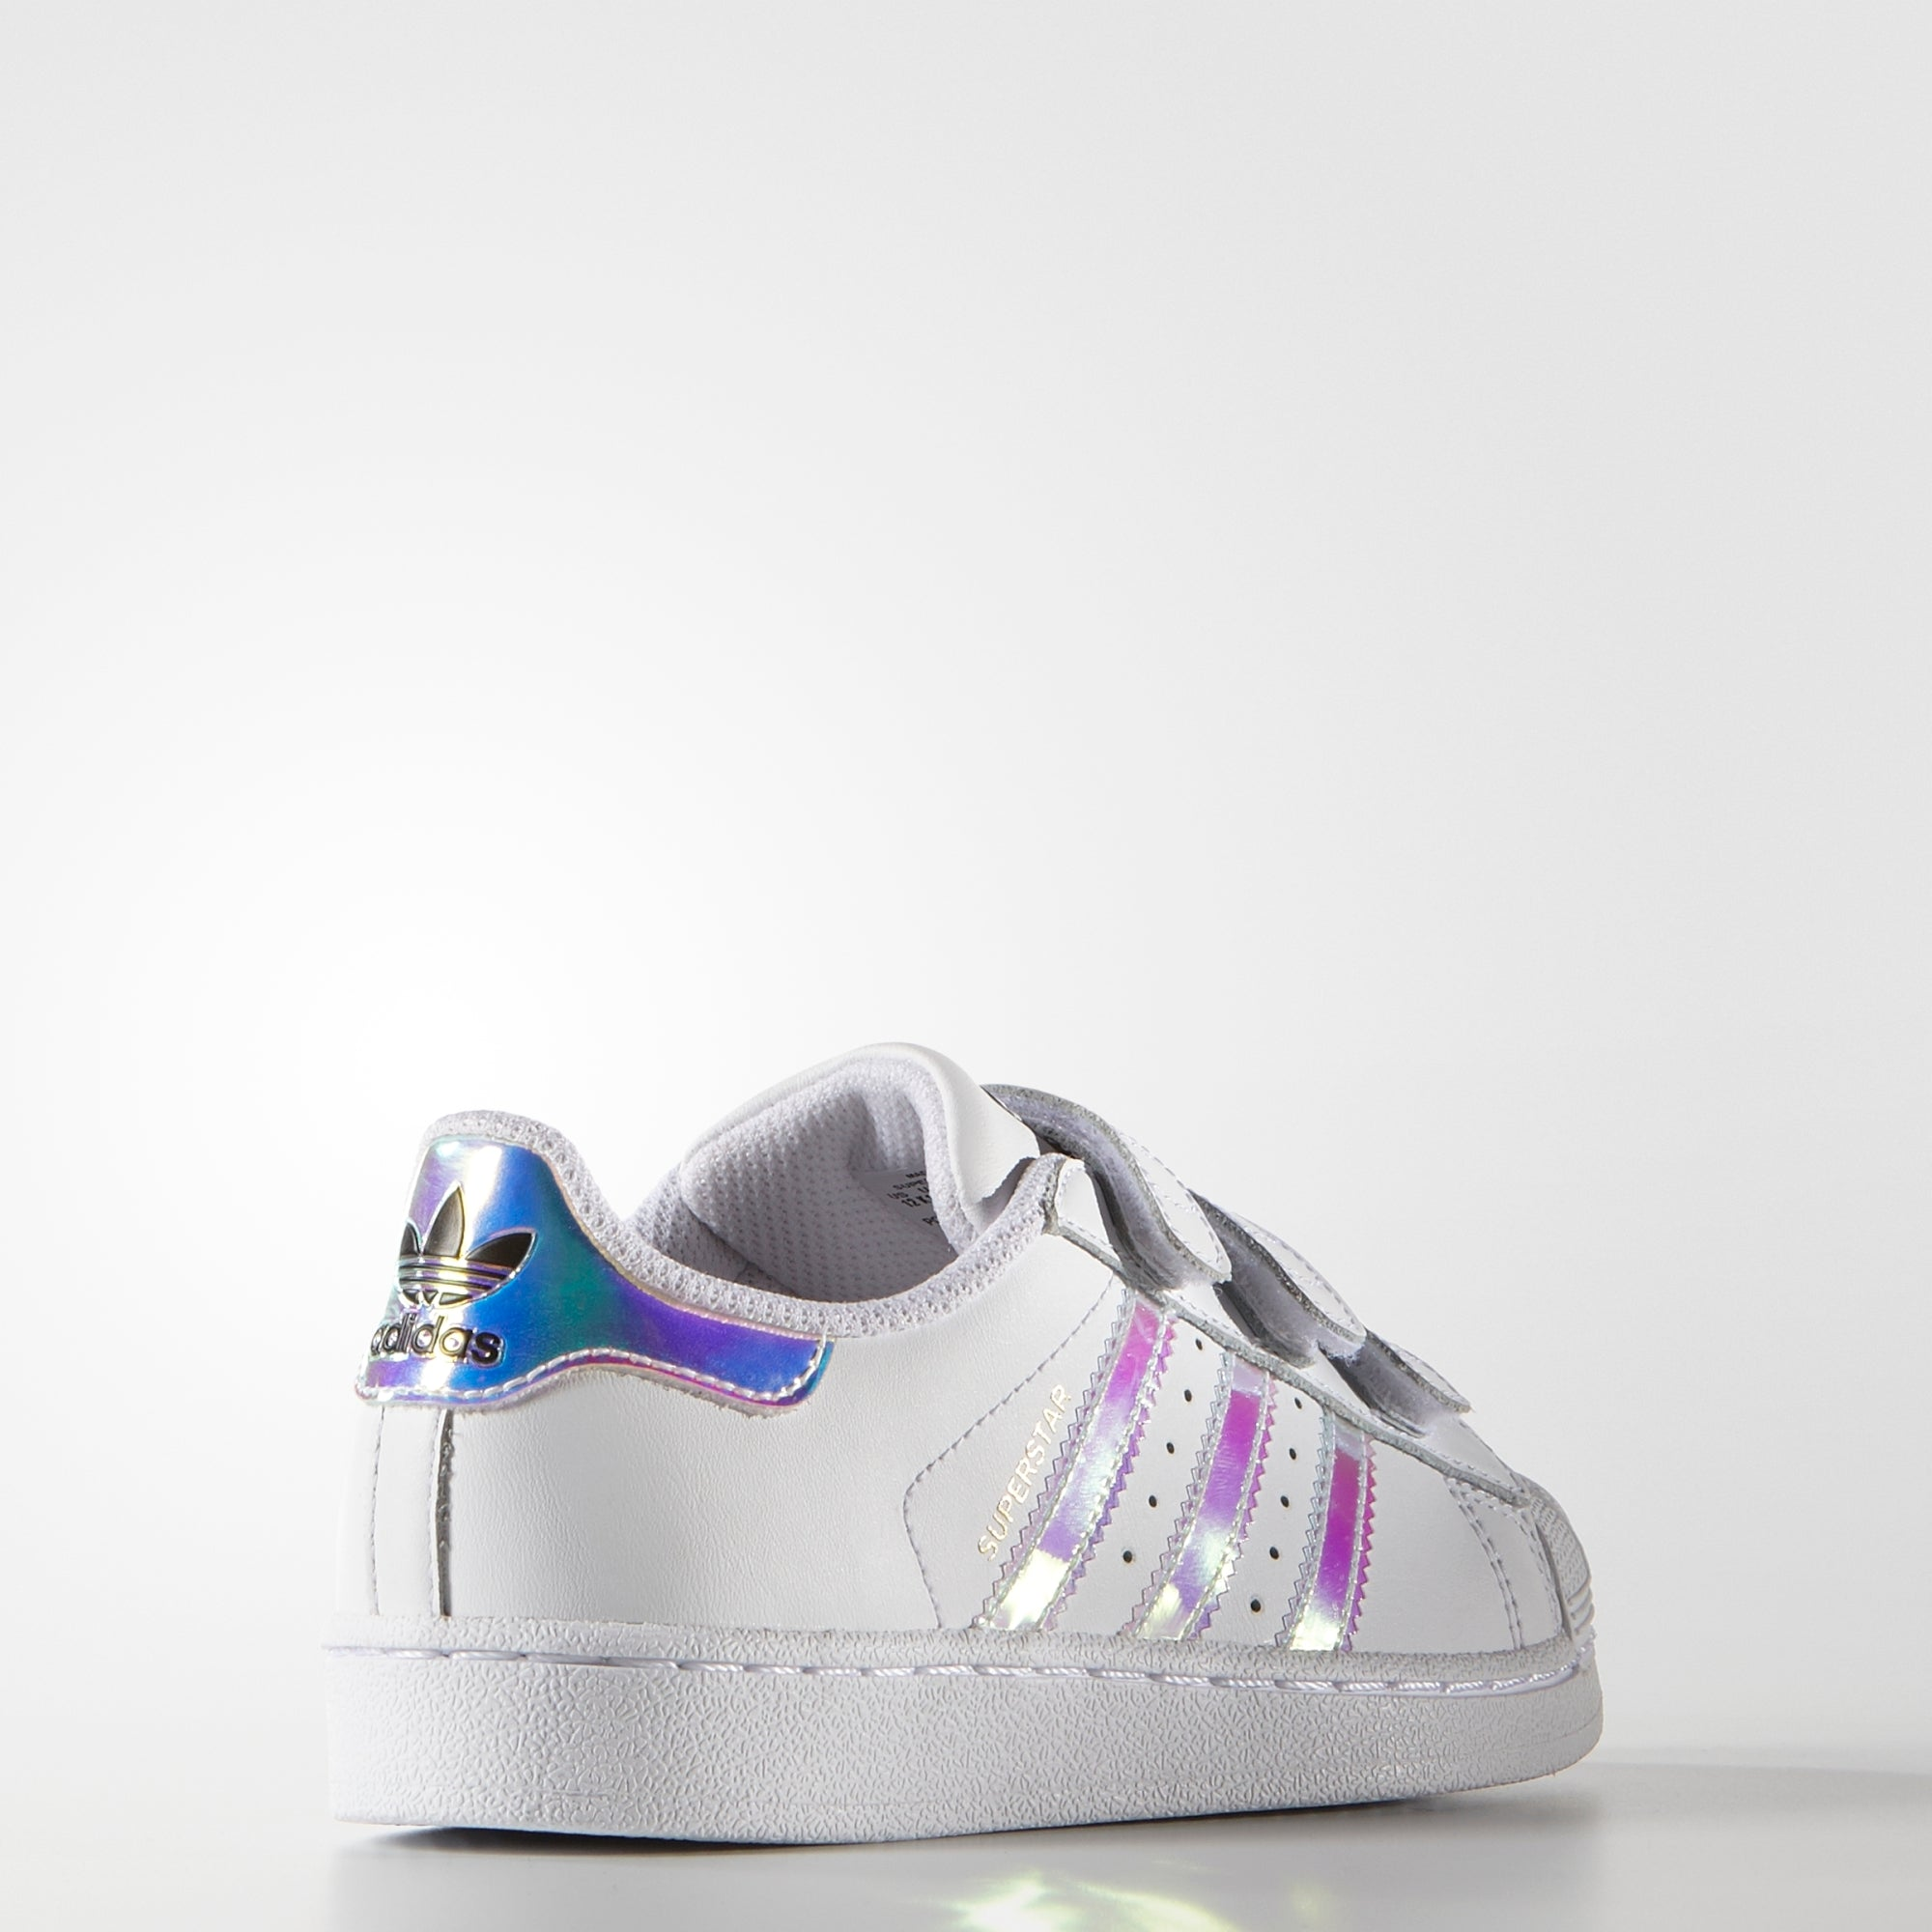 c47d872d53a5 Kid s adidas Originals Superstar Velcro Shoes White Hologram Iridescent. 1